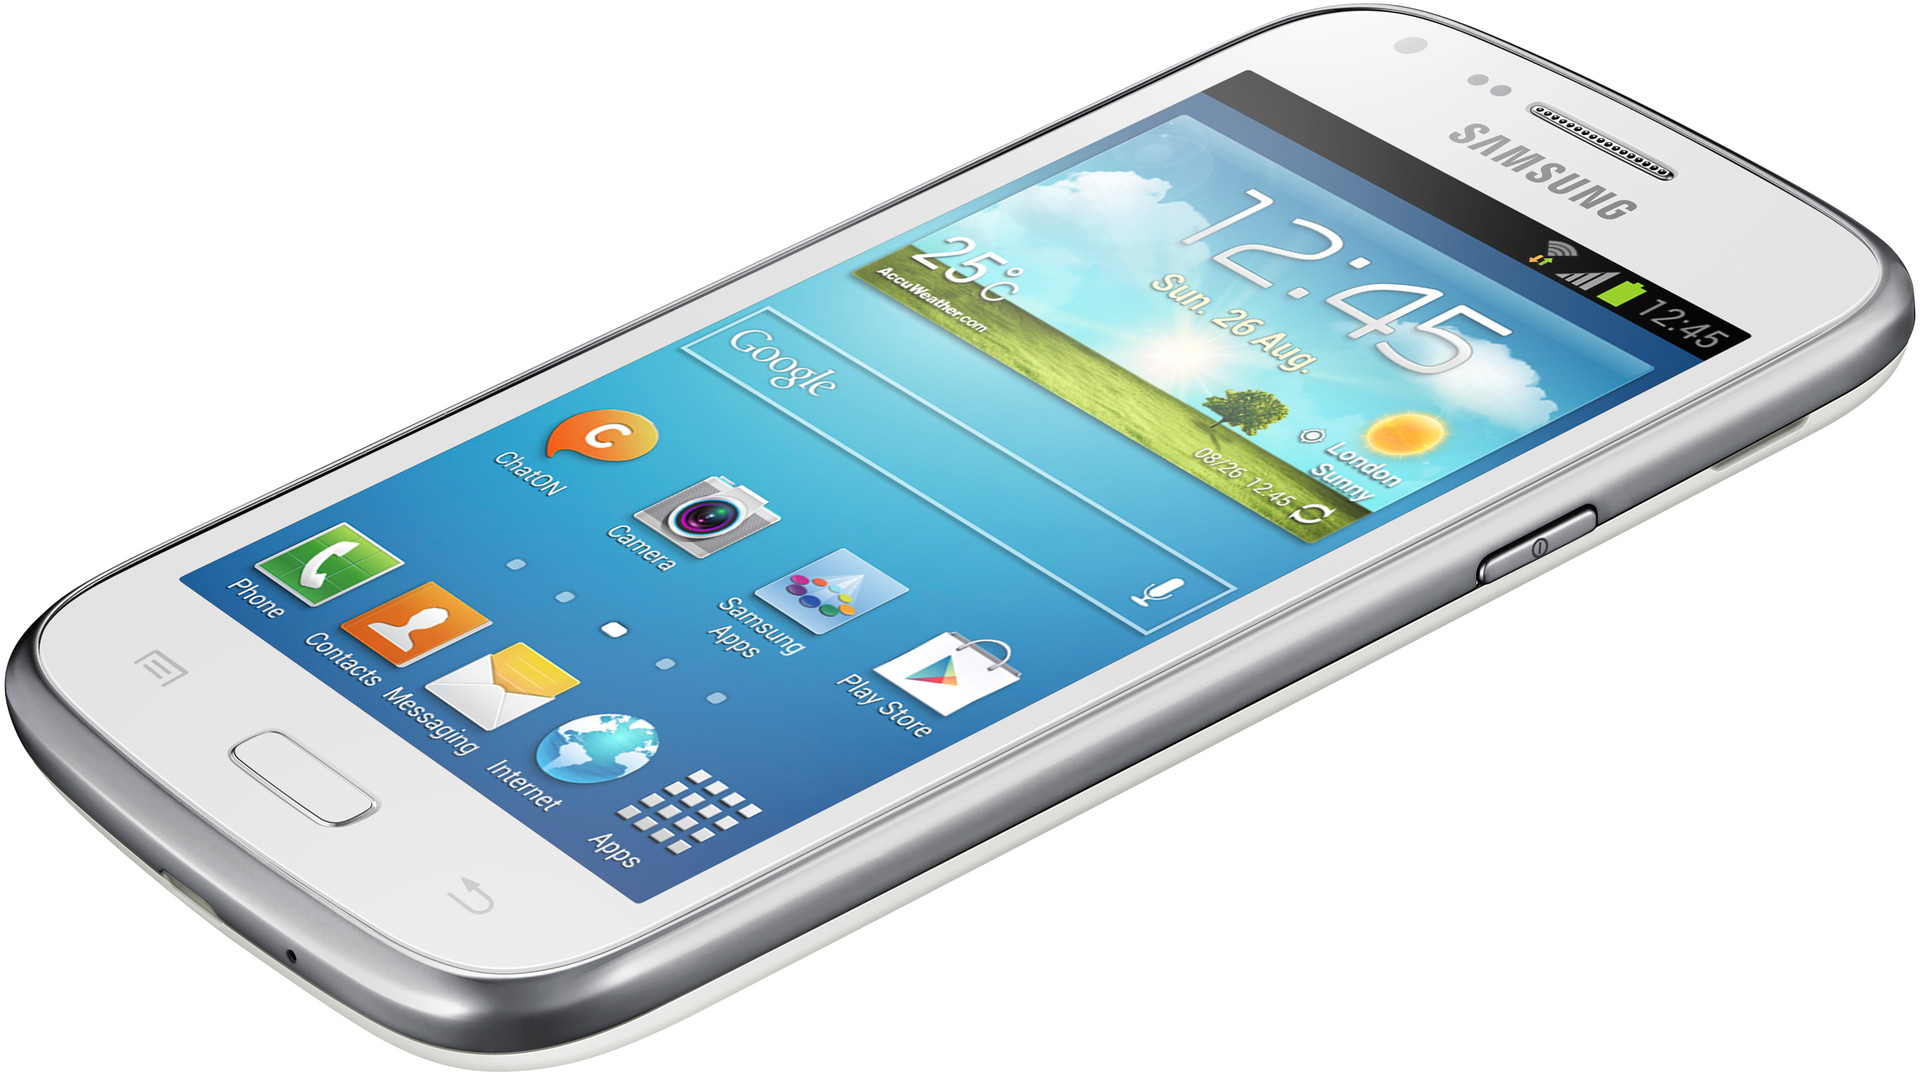 Samsung Galaxy - despite selling loads, they're not really all that great.